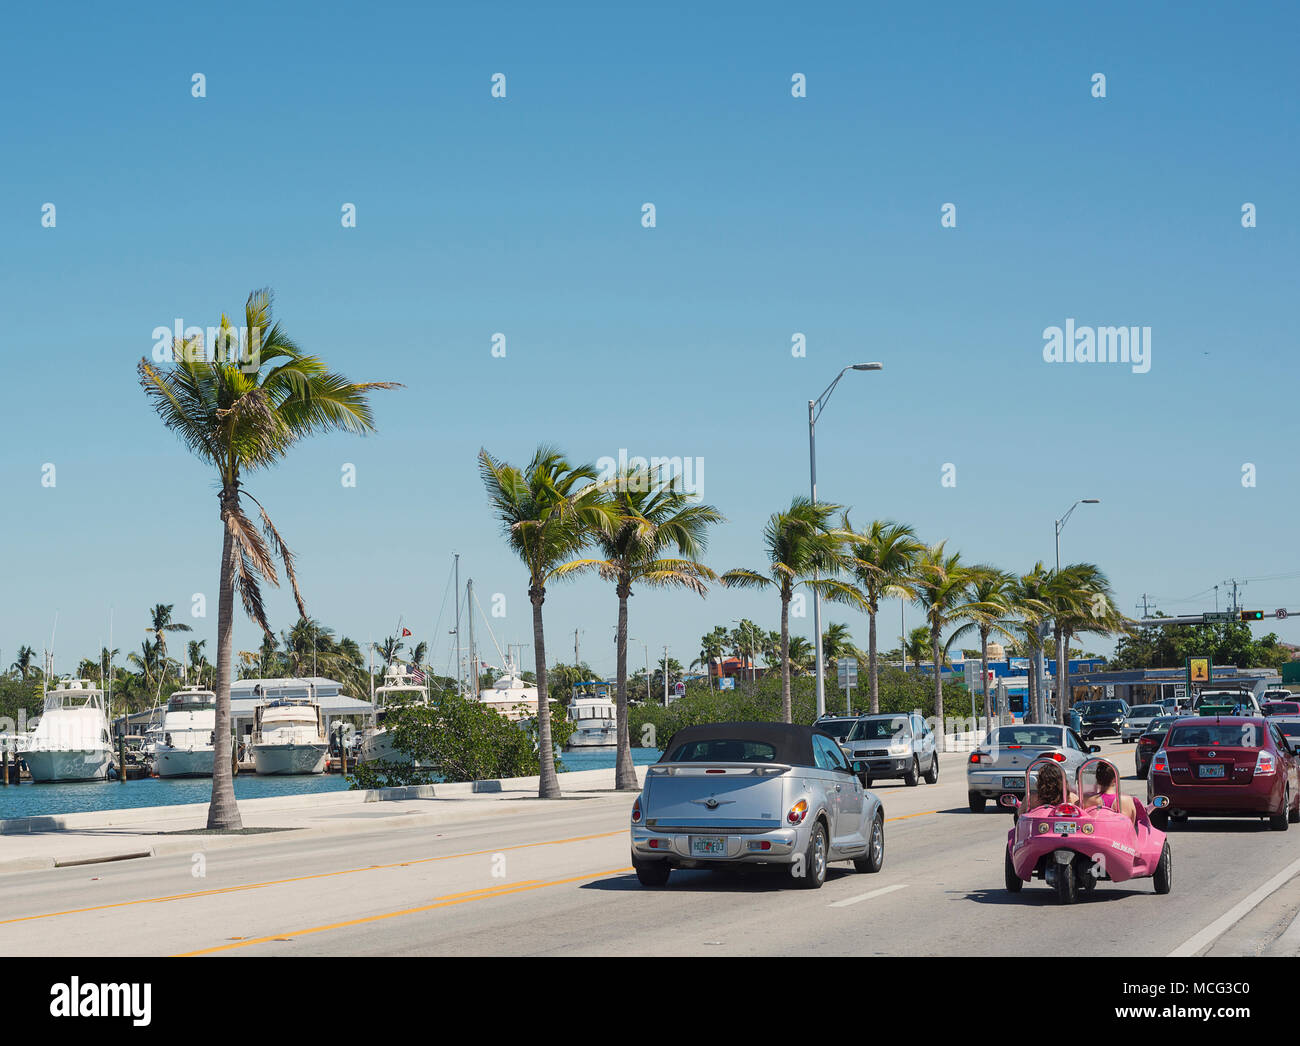 Traffic in Key West, Florida. - Stock Image